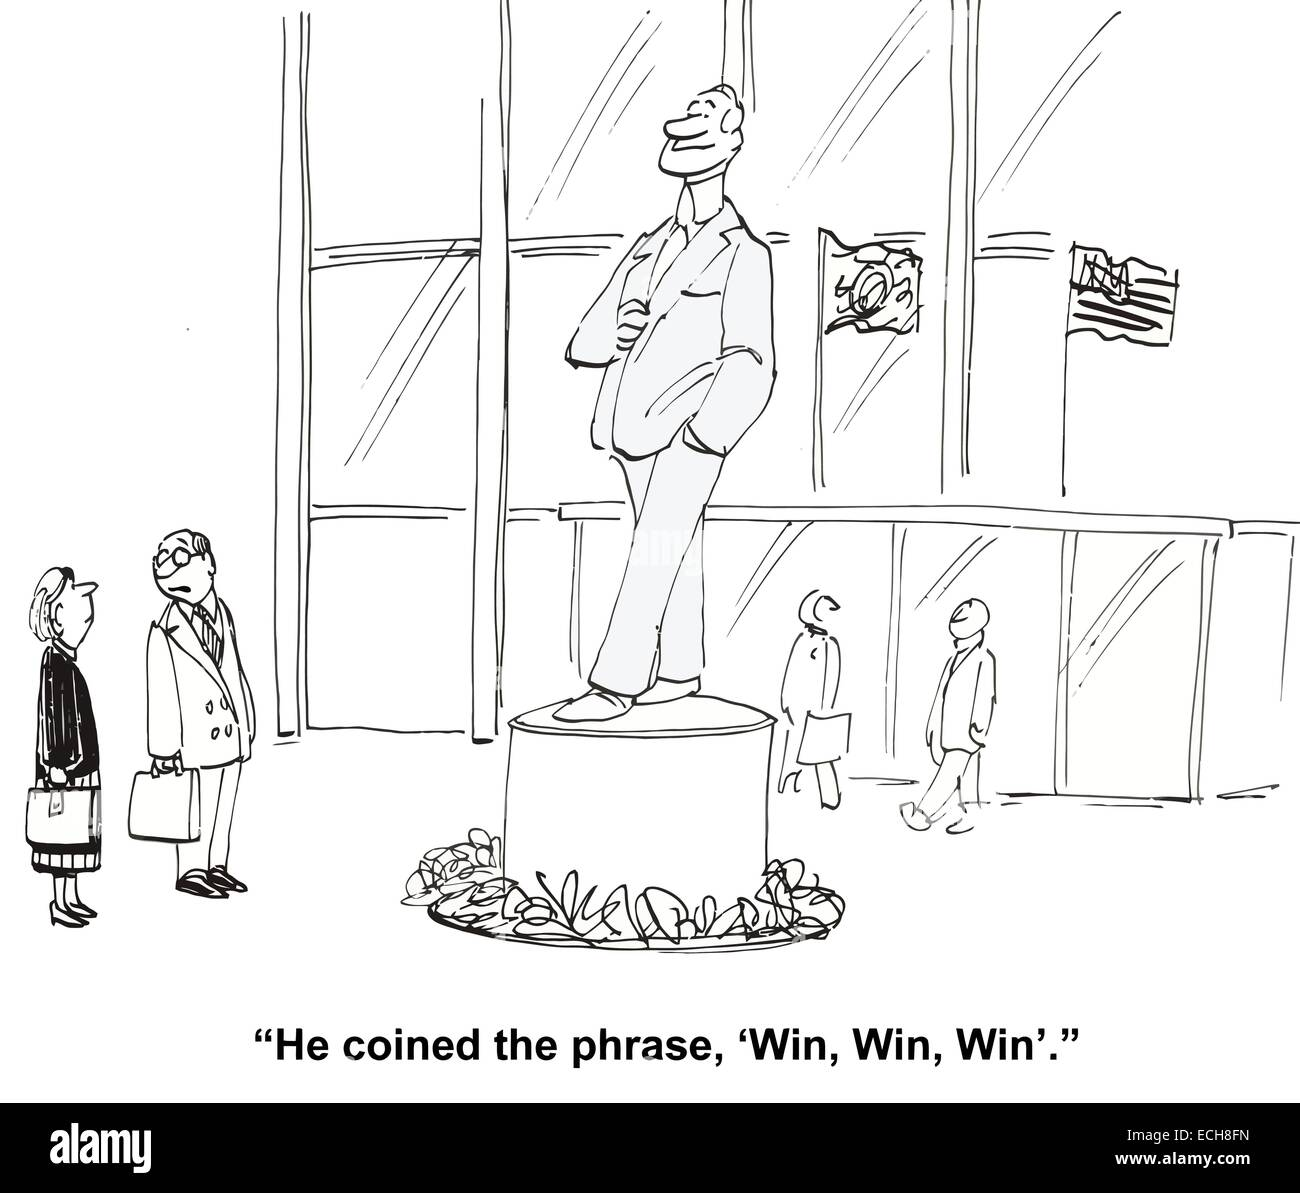 'He coined the phrase, 'win, win, win'.' - Stock Vector